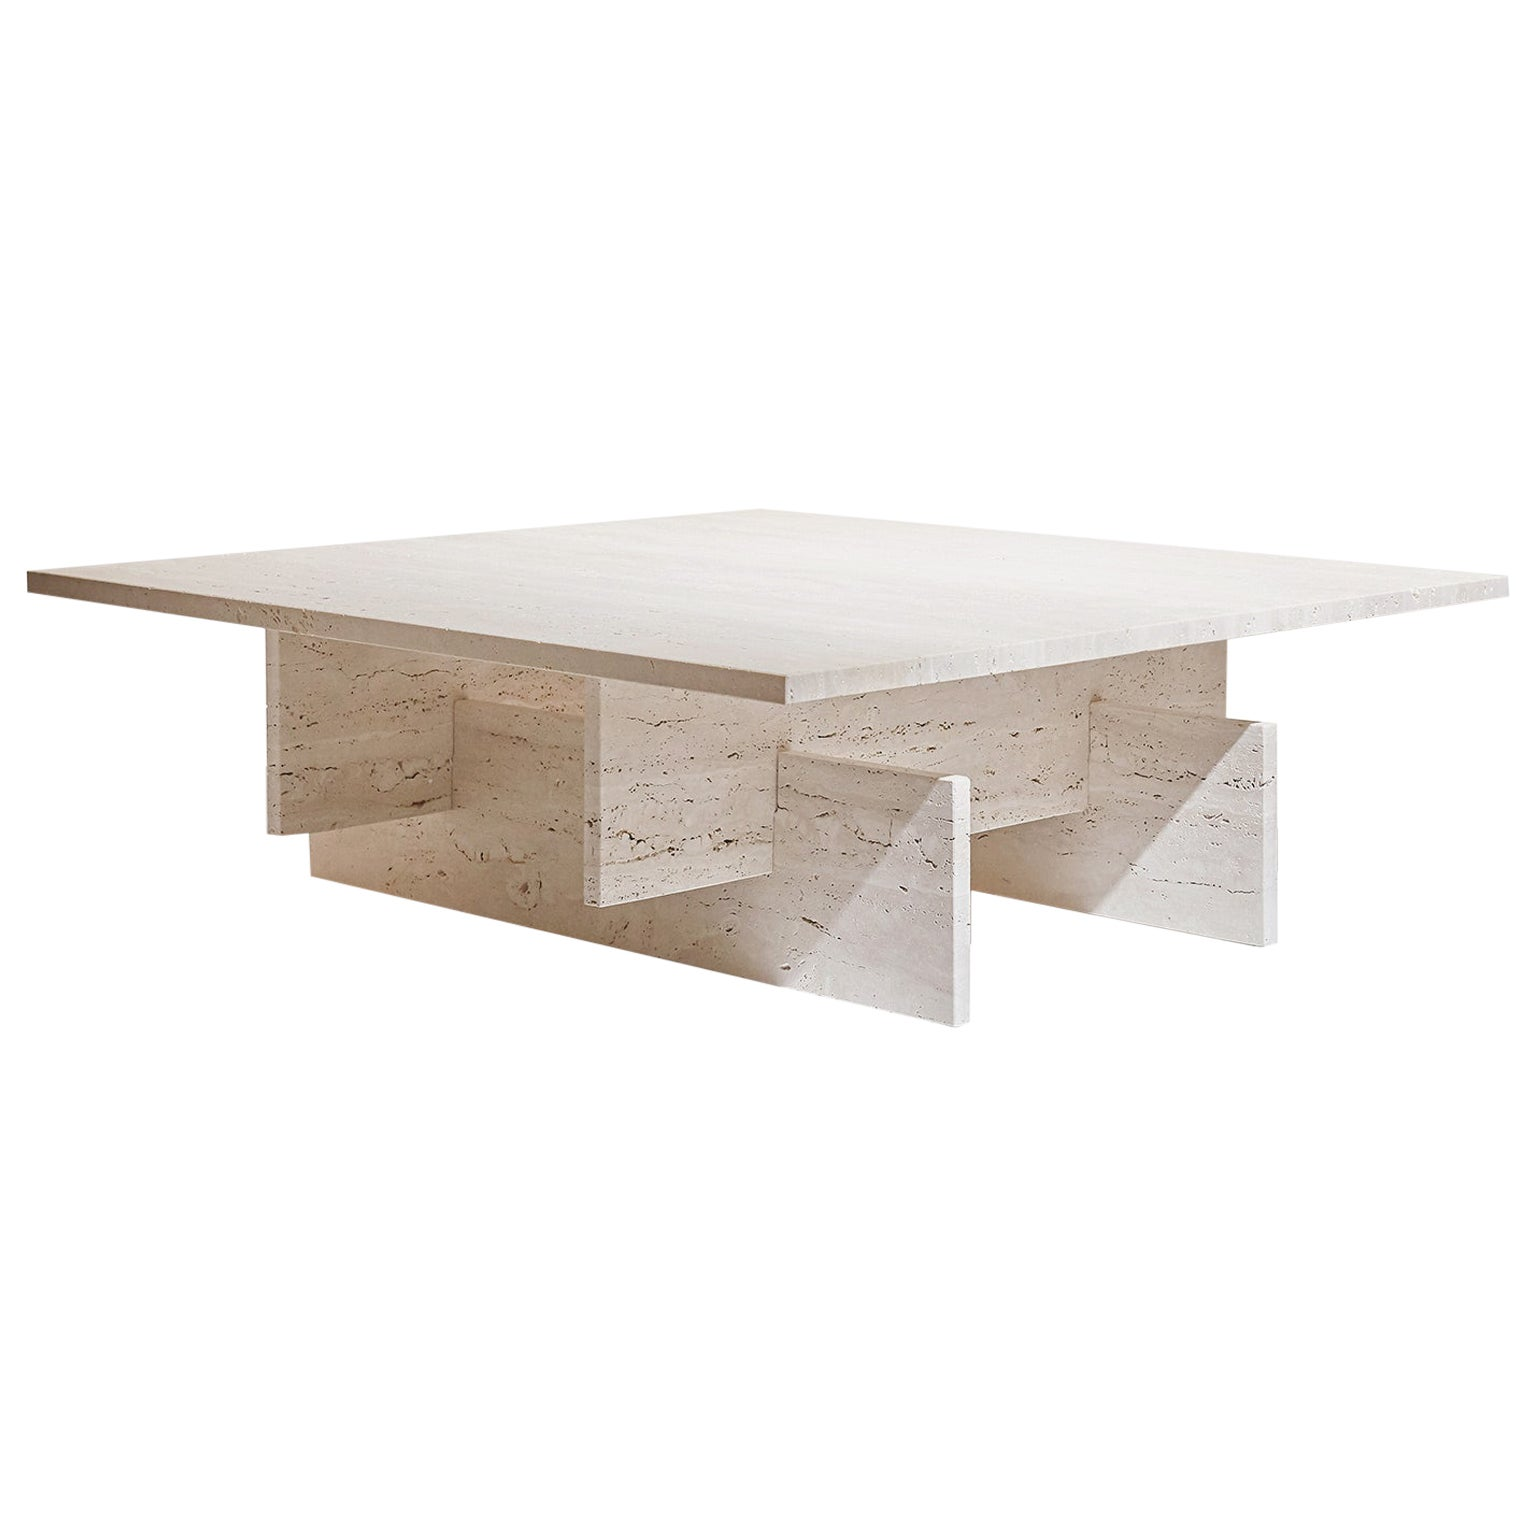 """Marbelous Fit Table"" Minimalist Coffee Table in Travertine Marble"